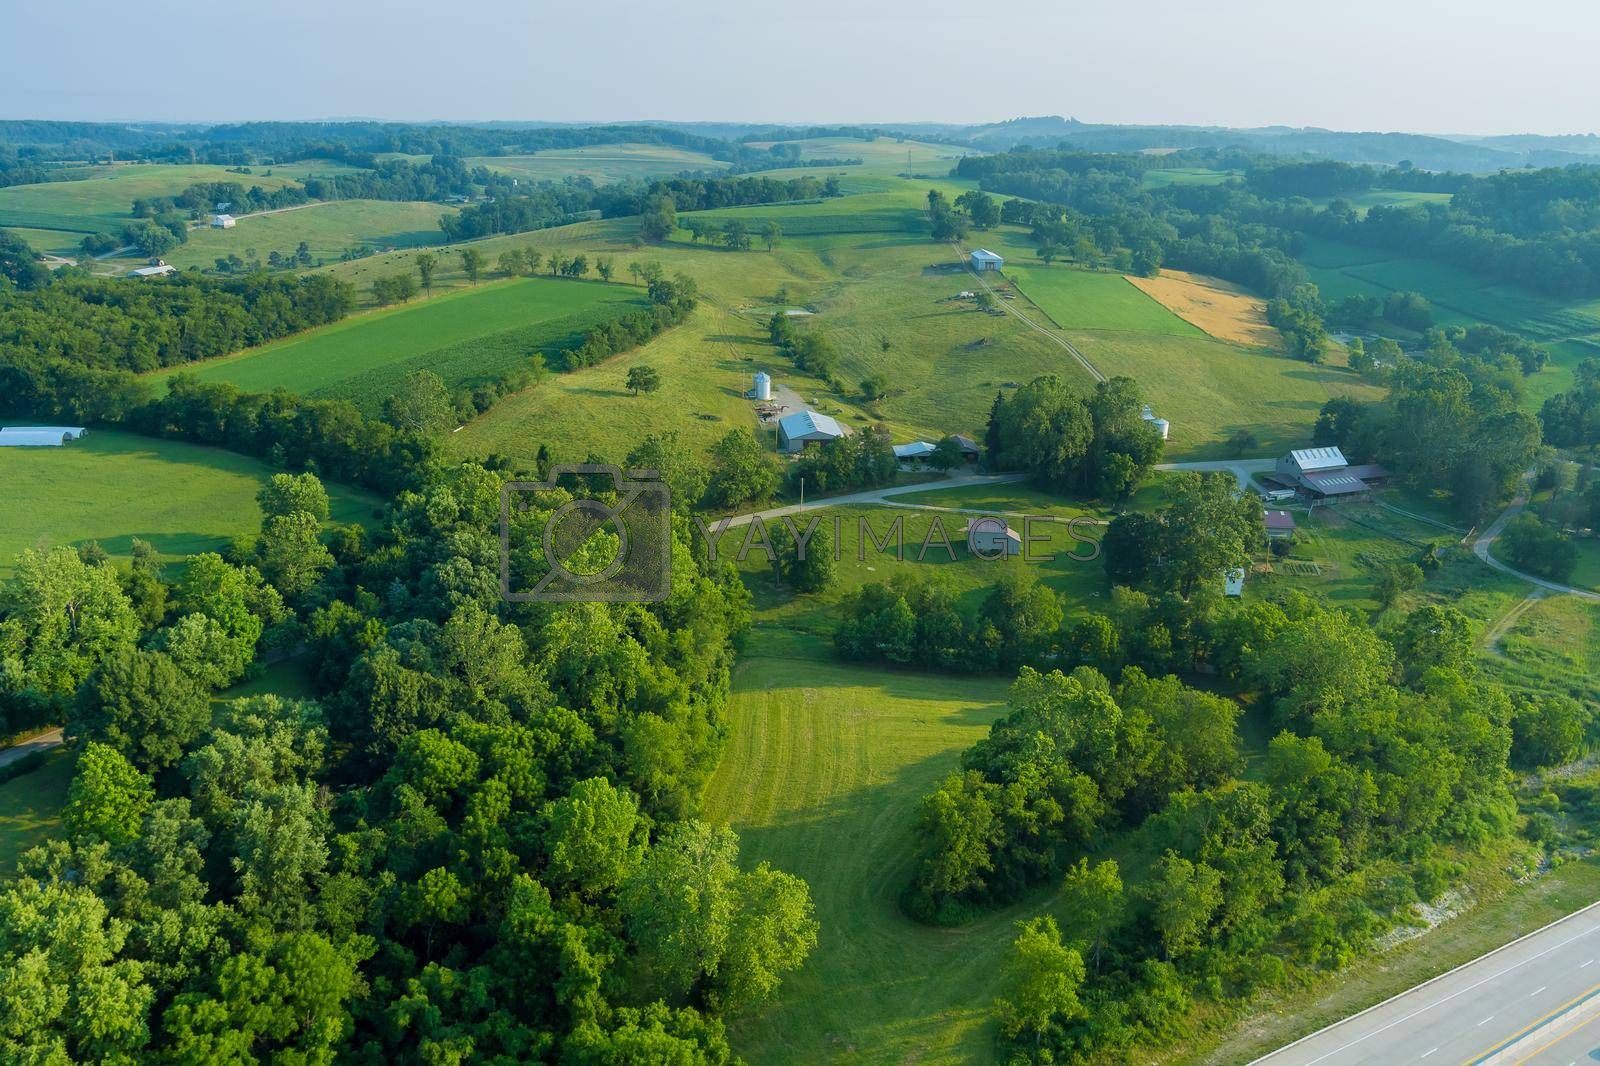 Royalty free image of Forests farm fields the mountains Bentleyville town landscape panoramic view of beautiful villages on the hills in Pennsylvania USA by ungvar